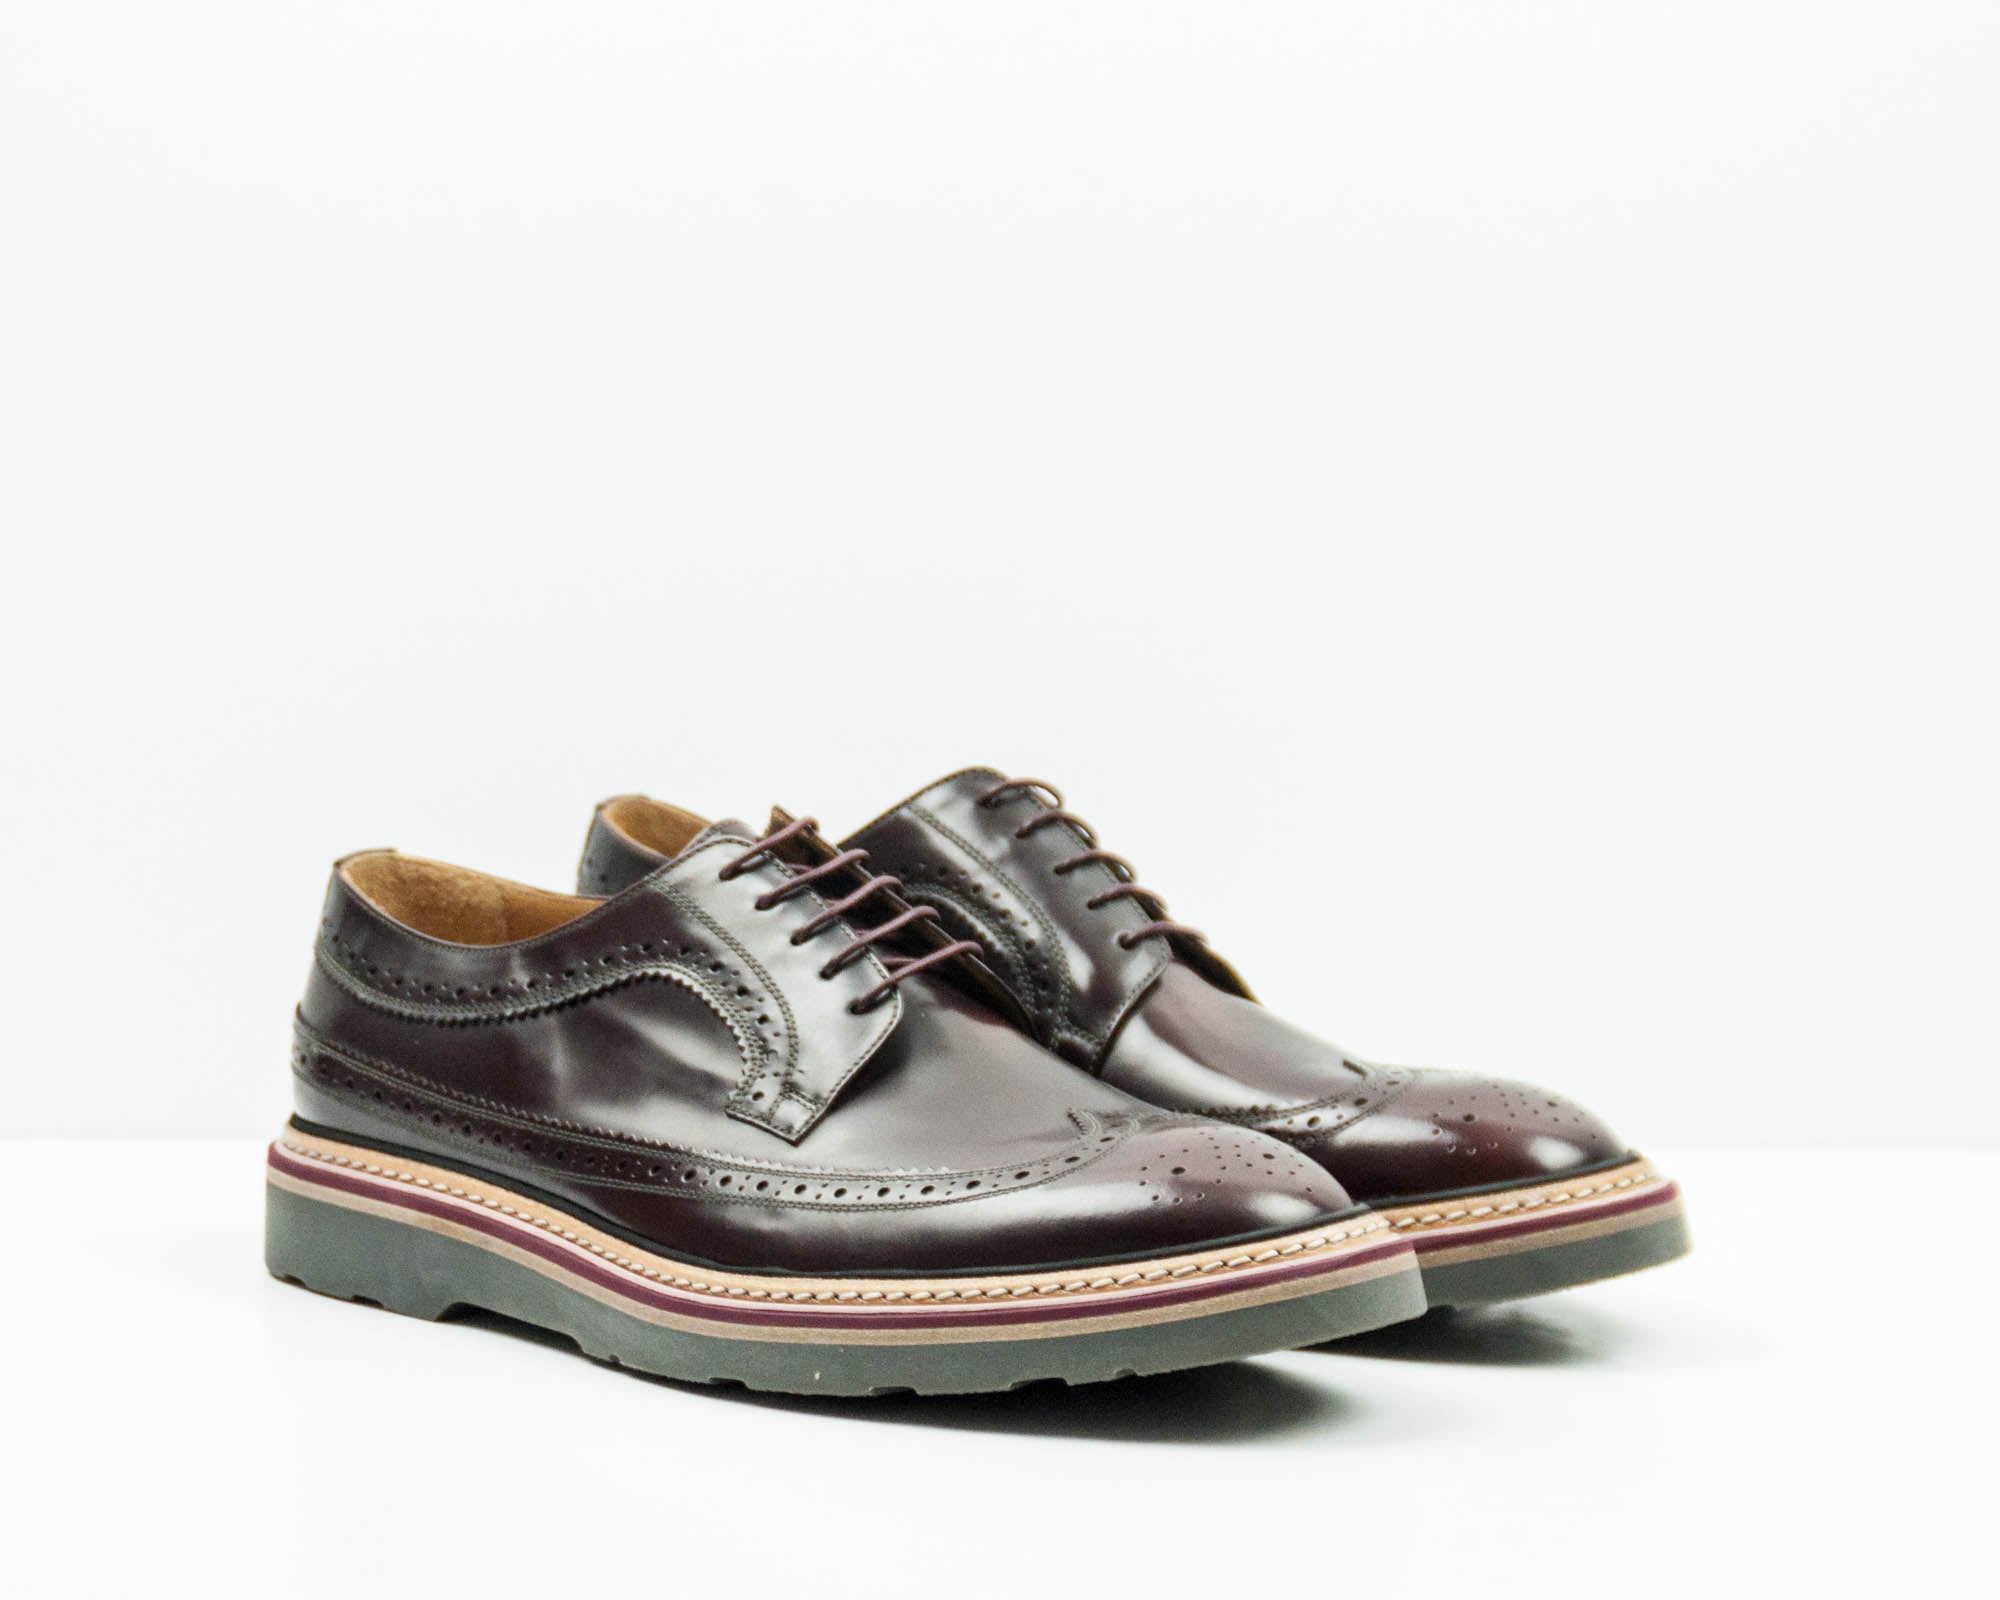 Zapato Paul Smith snxcp111cso marrón